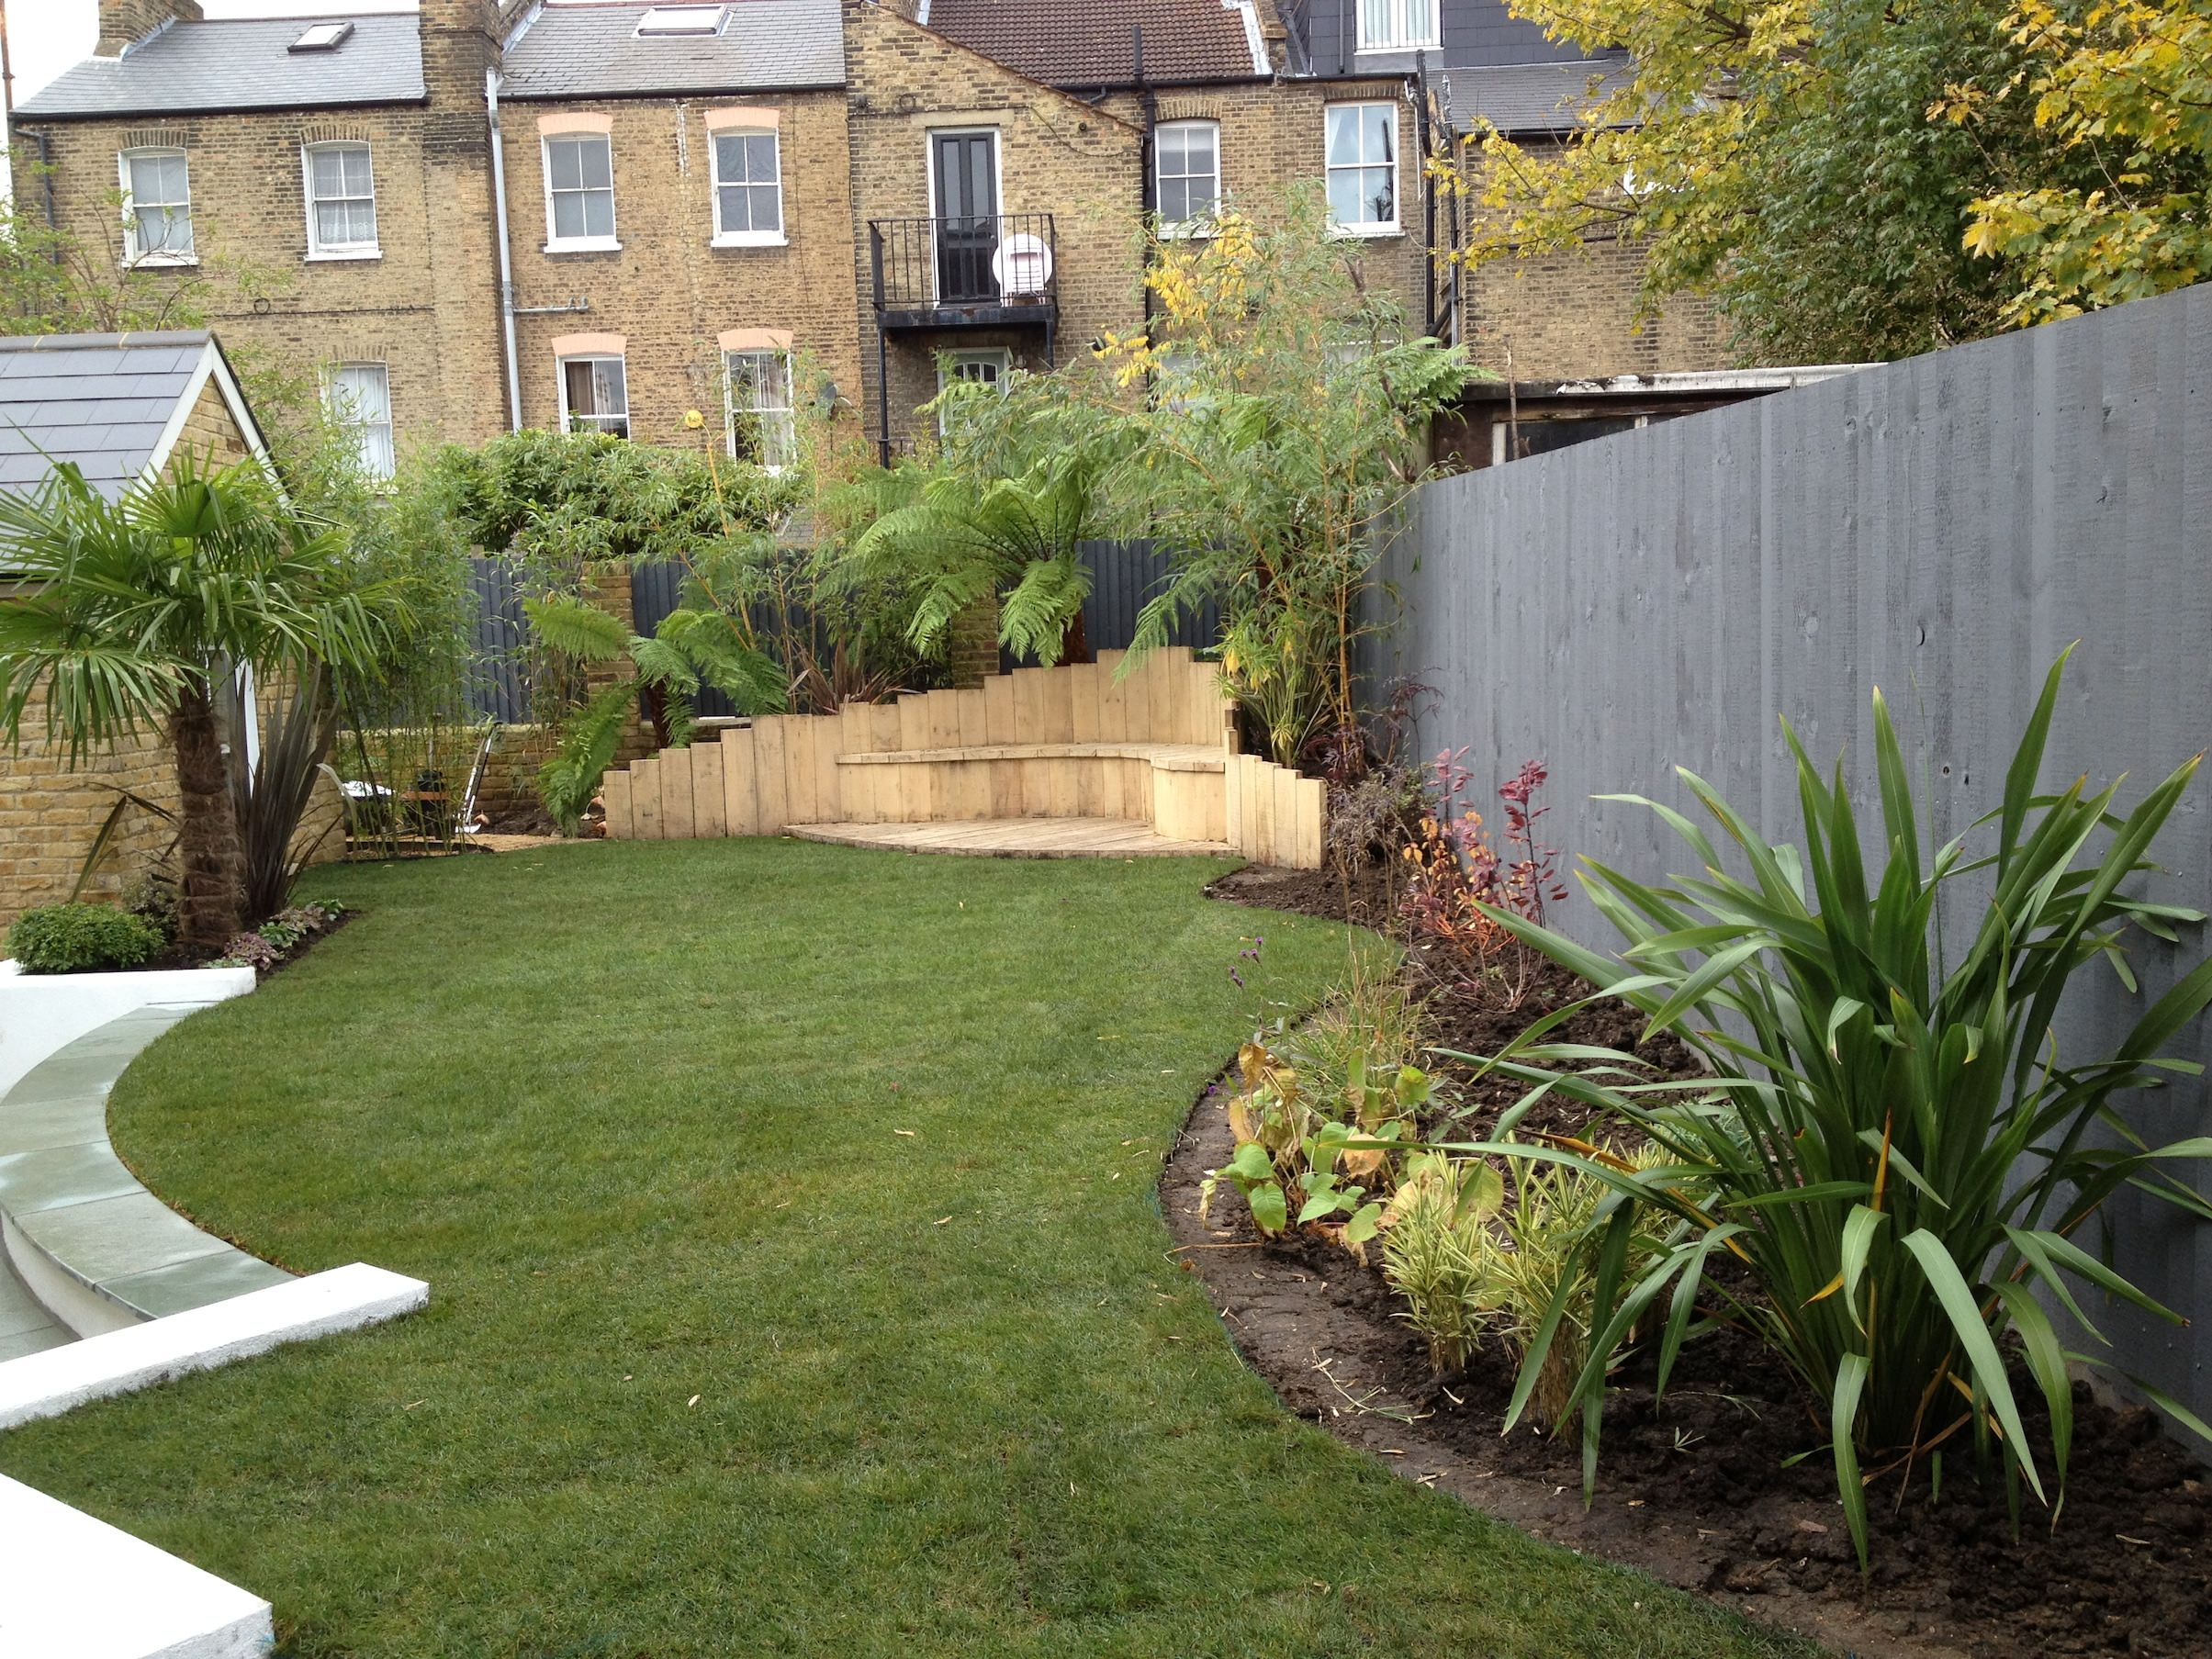 Low maintenance garden designs garden club london for The best garden design